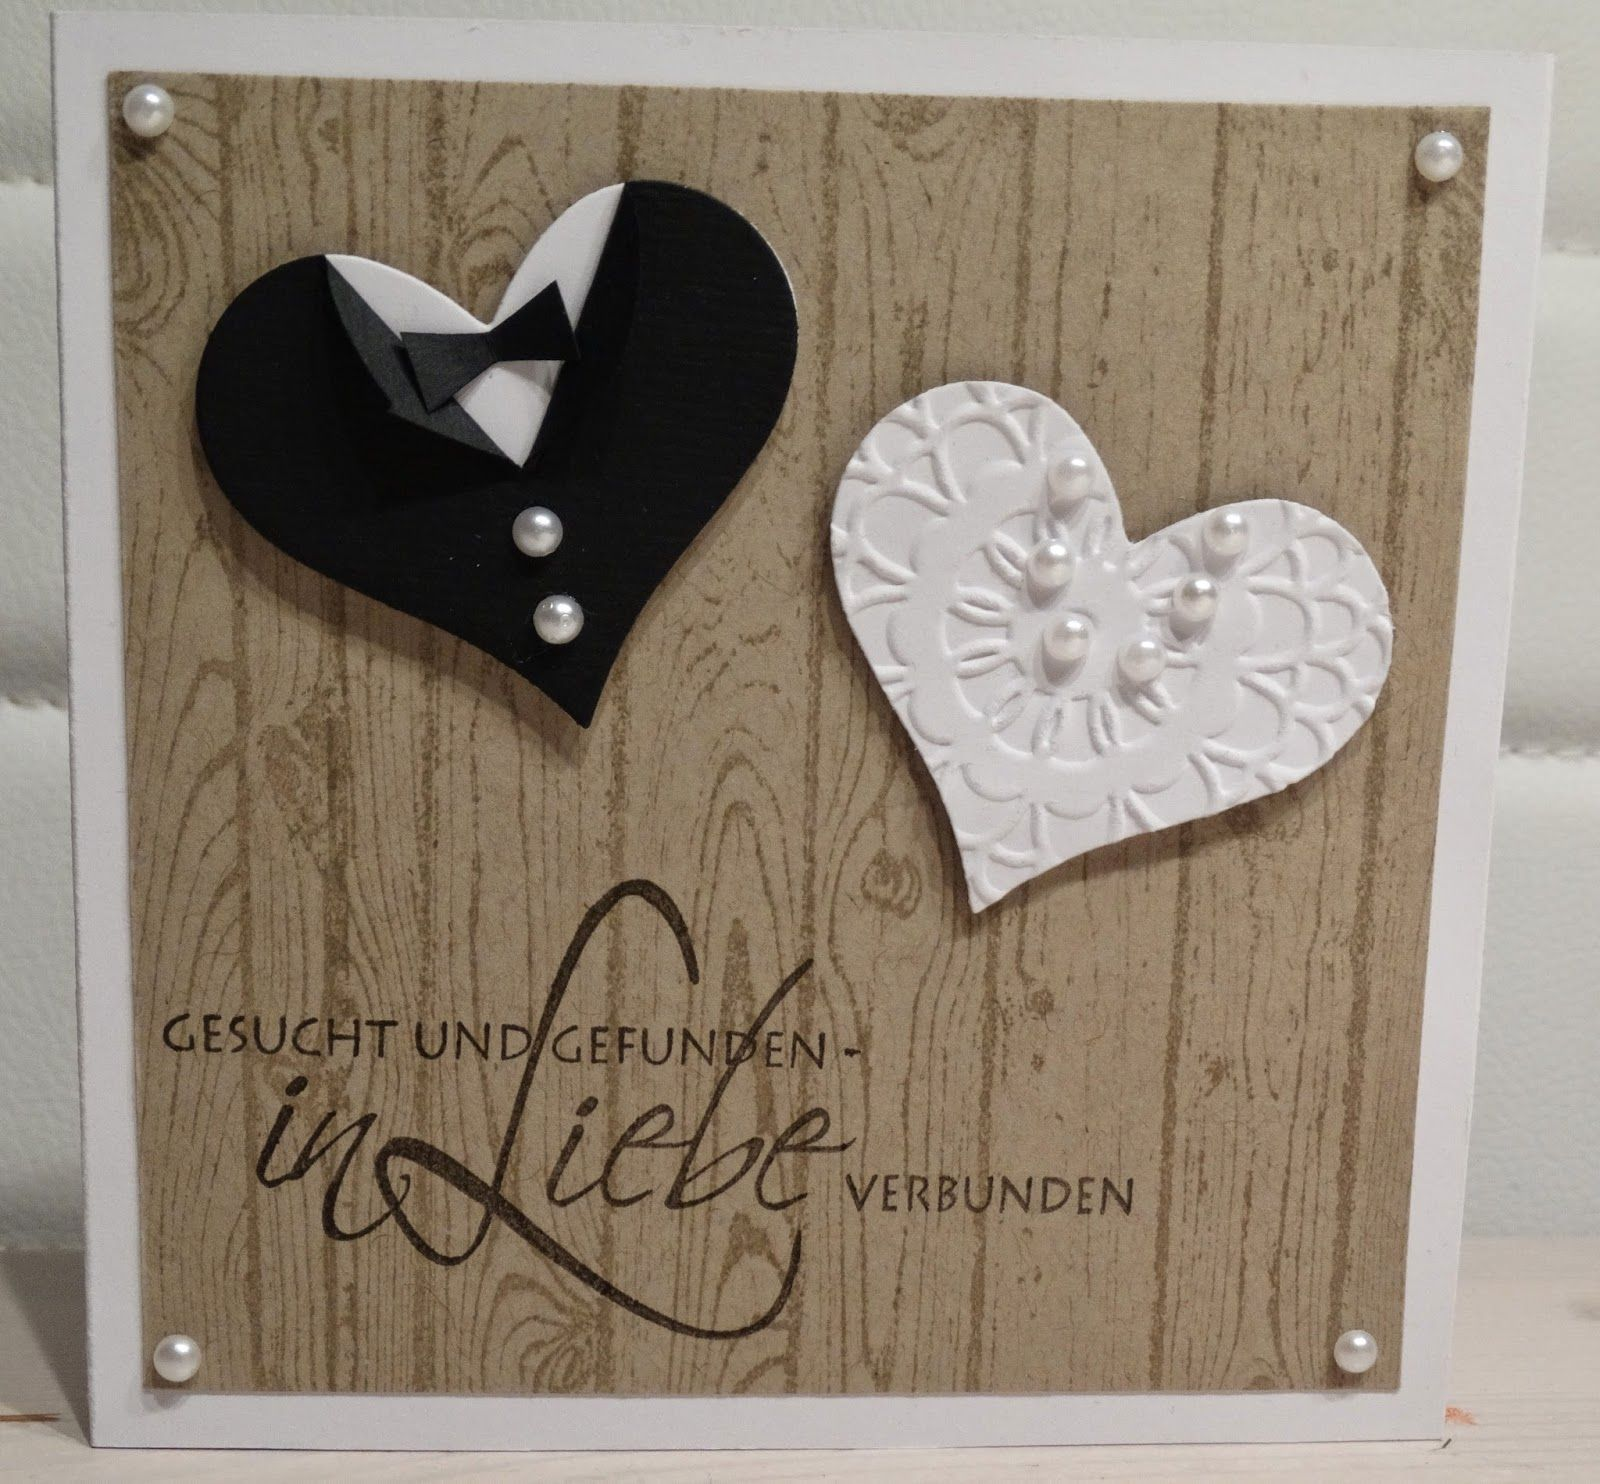 handmade with love p n svatebn pinterest cards wedding and wedding card. Black Bedroom Furniture Sets. Home Design Ideas